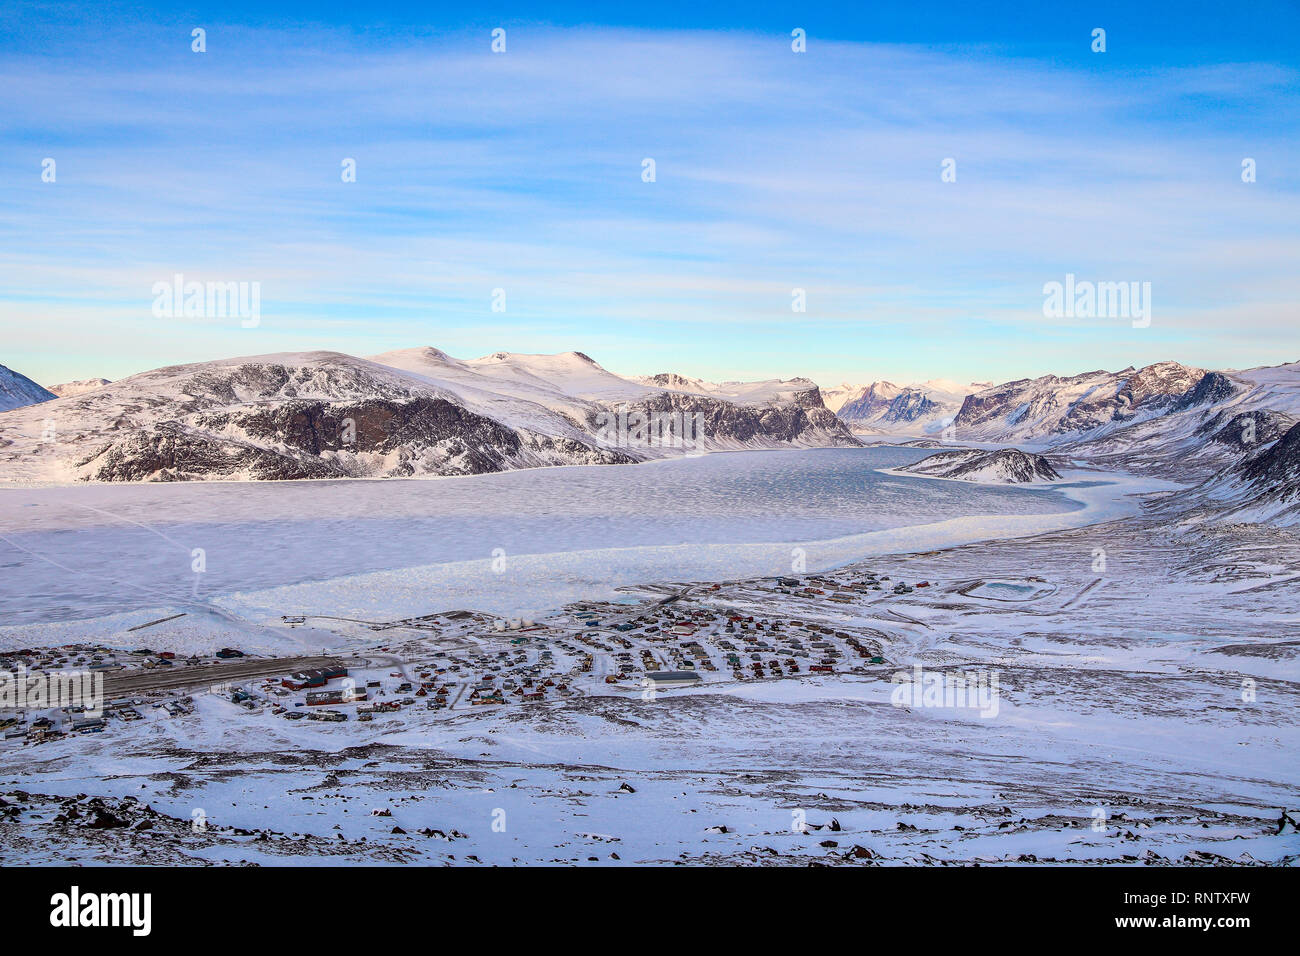 A view of the village of Pangnirtung during winter when the sea has frozen. The fiord leading to Auyuittuq National Park. - Stock Image